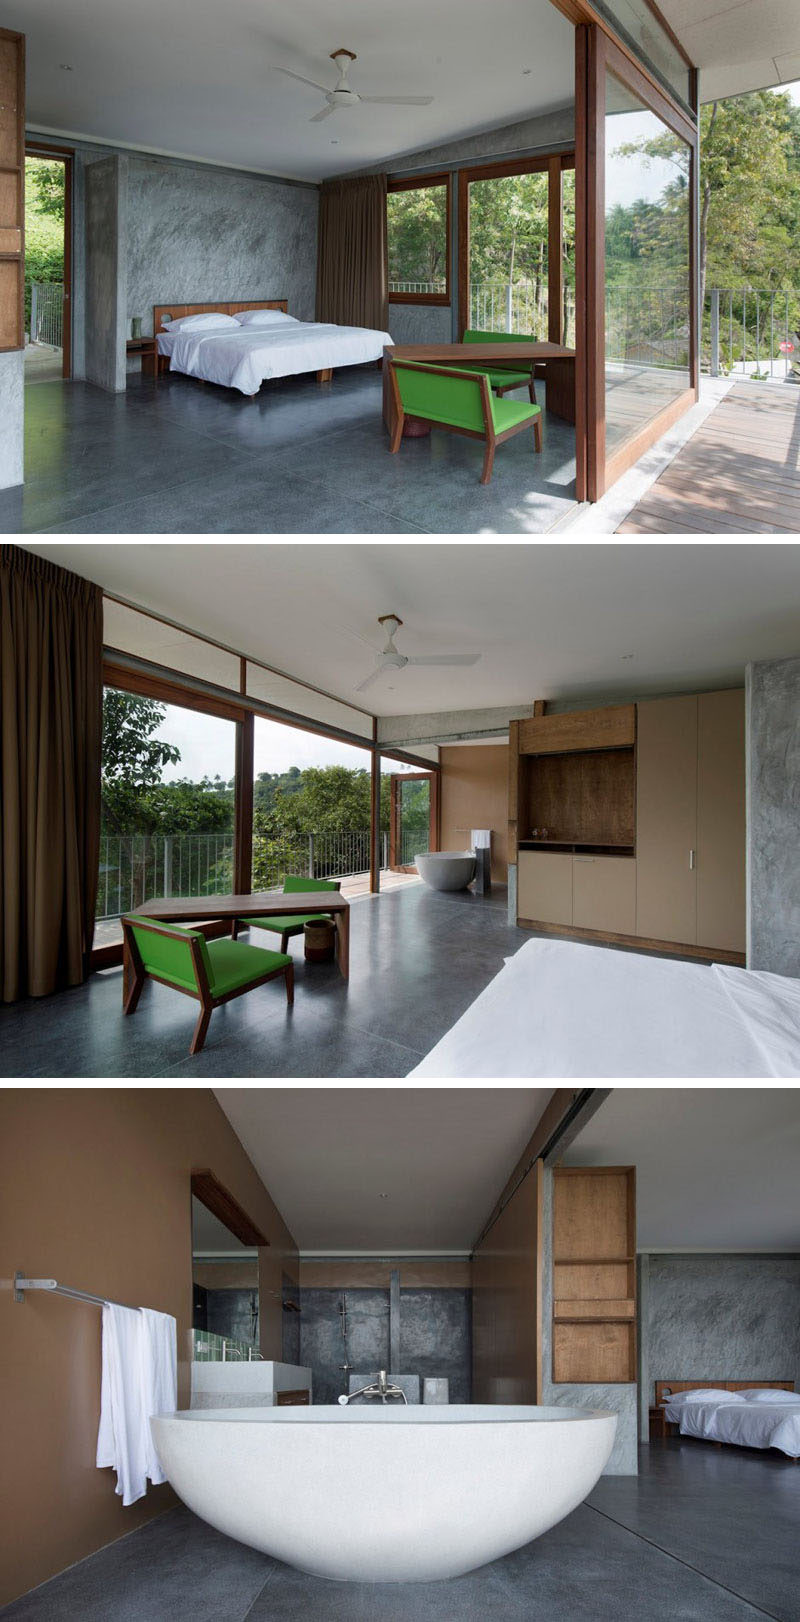 The large sliding glass doors open to allow the air to flow through this bedroom and bathroom.